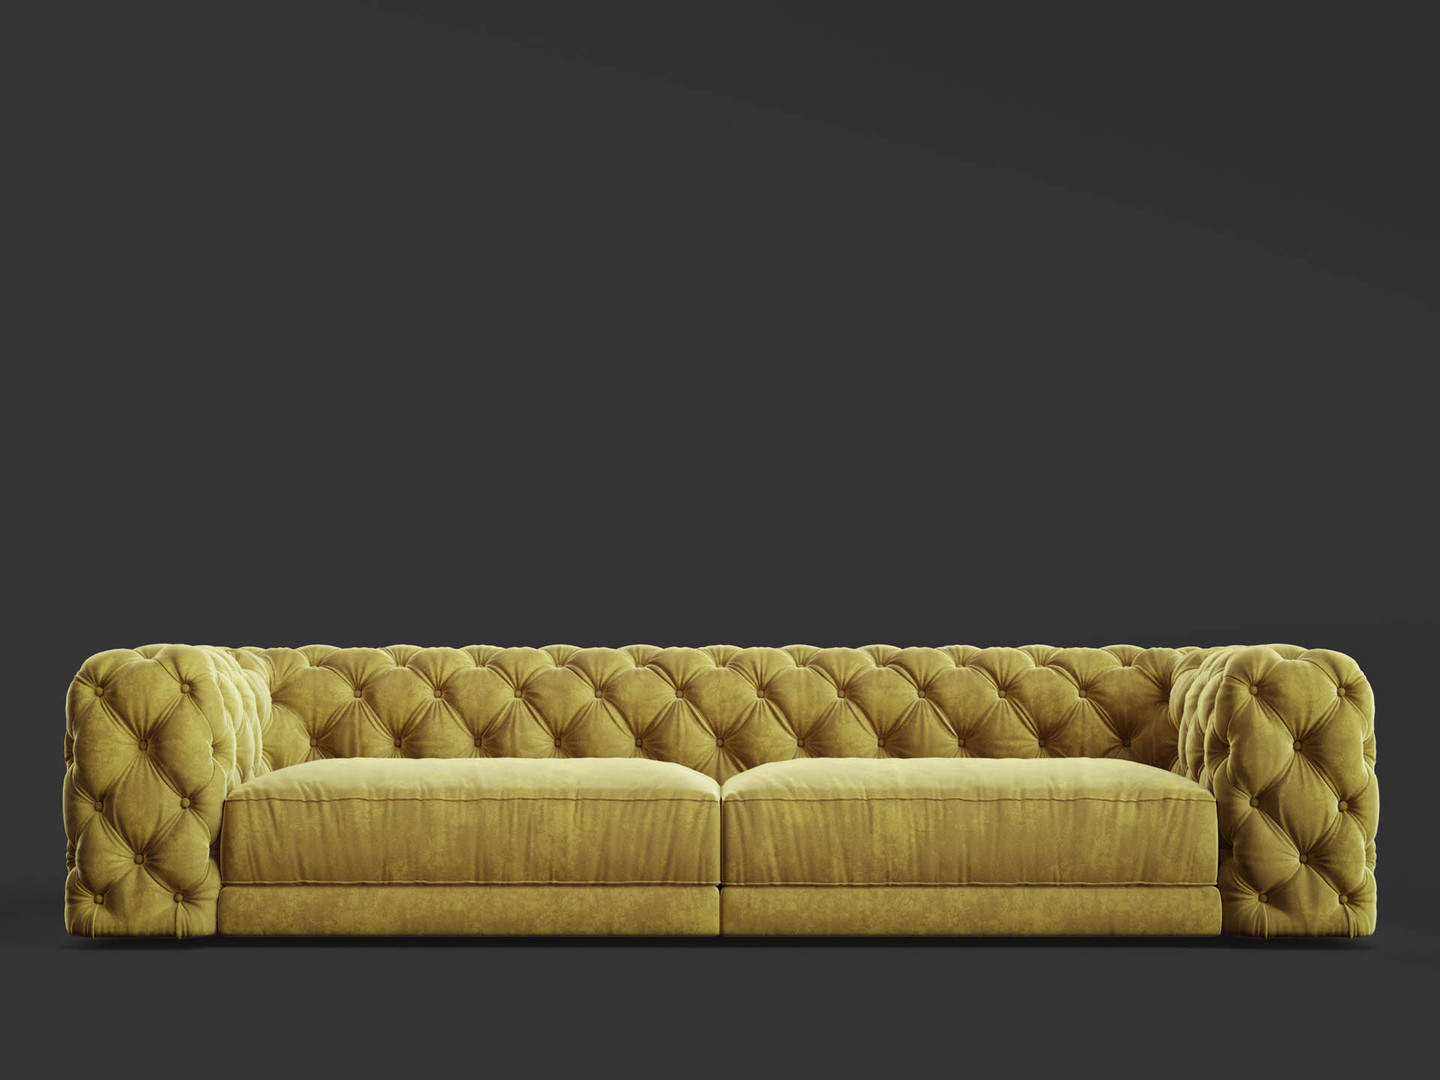 Tufted Sofa 2 MediaLab ProductViz.jpg